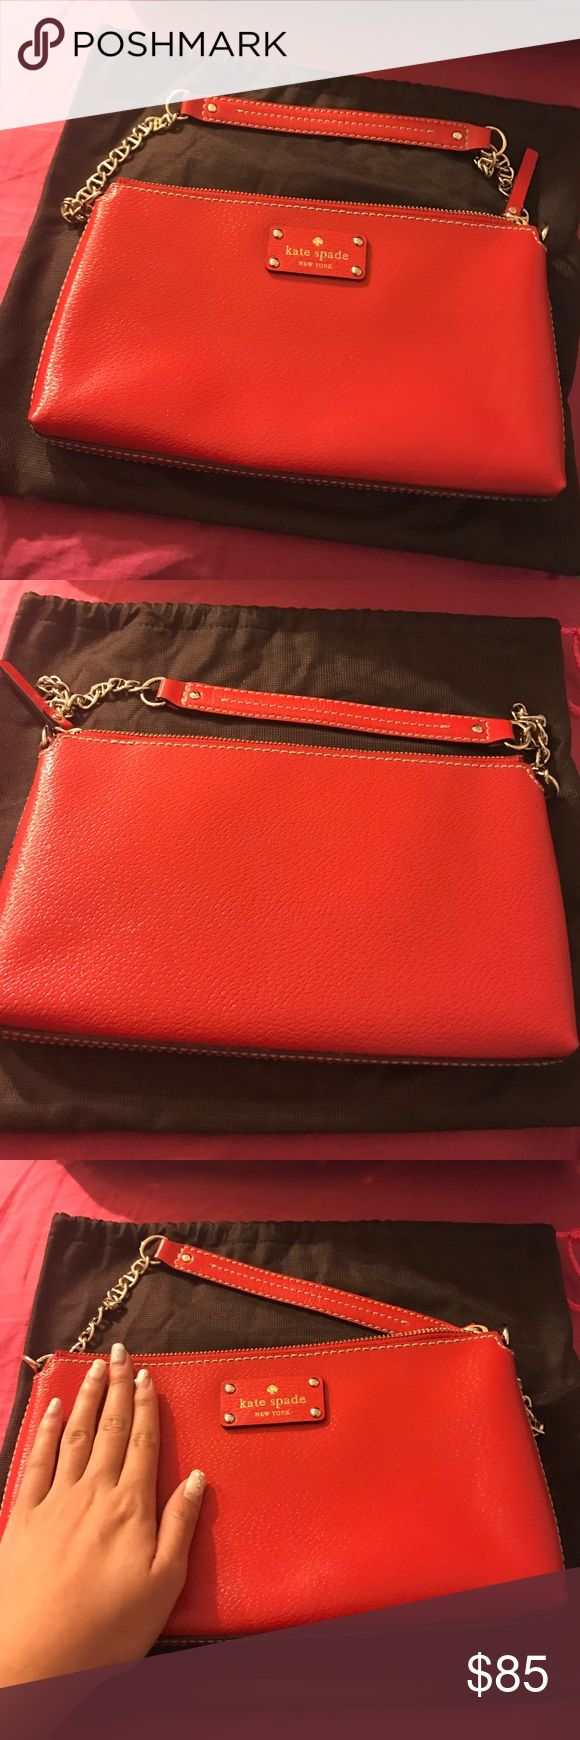 Kate spade red shoulder bag. Kate spade new without tag bag. Never used! It just sits in my closet ;) kate spade Bags Shoulder Bags